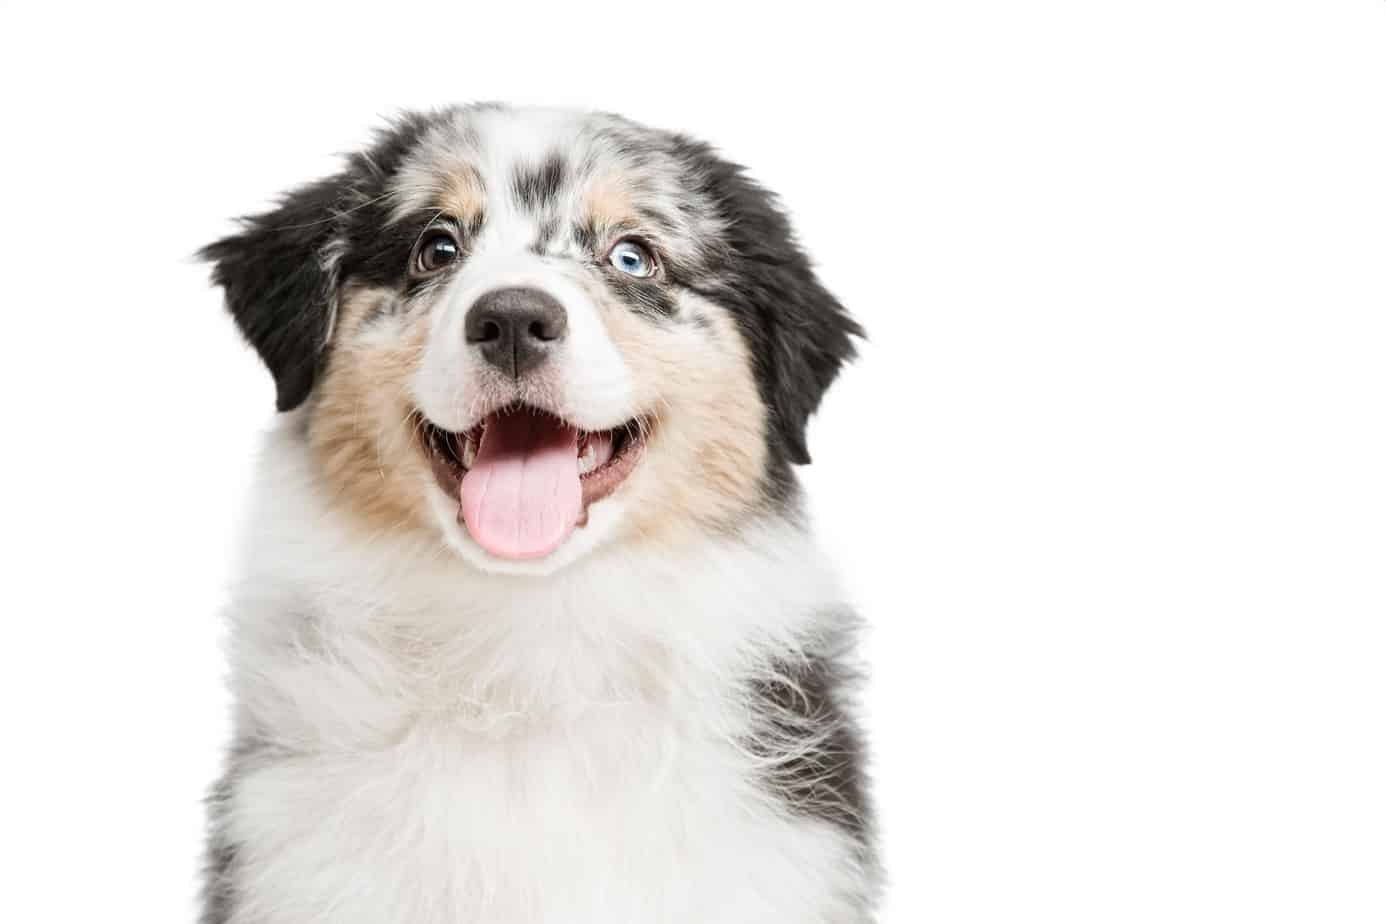 Australian shepherd puppy. Watch for vet warning signs: skipping meals, vomiting, lethargy, excessive thirst, and dry, rough coat.